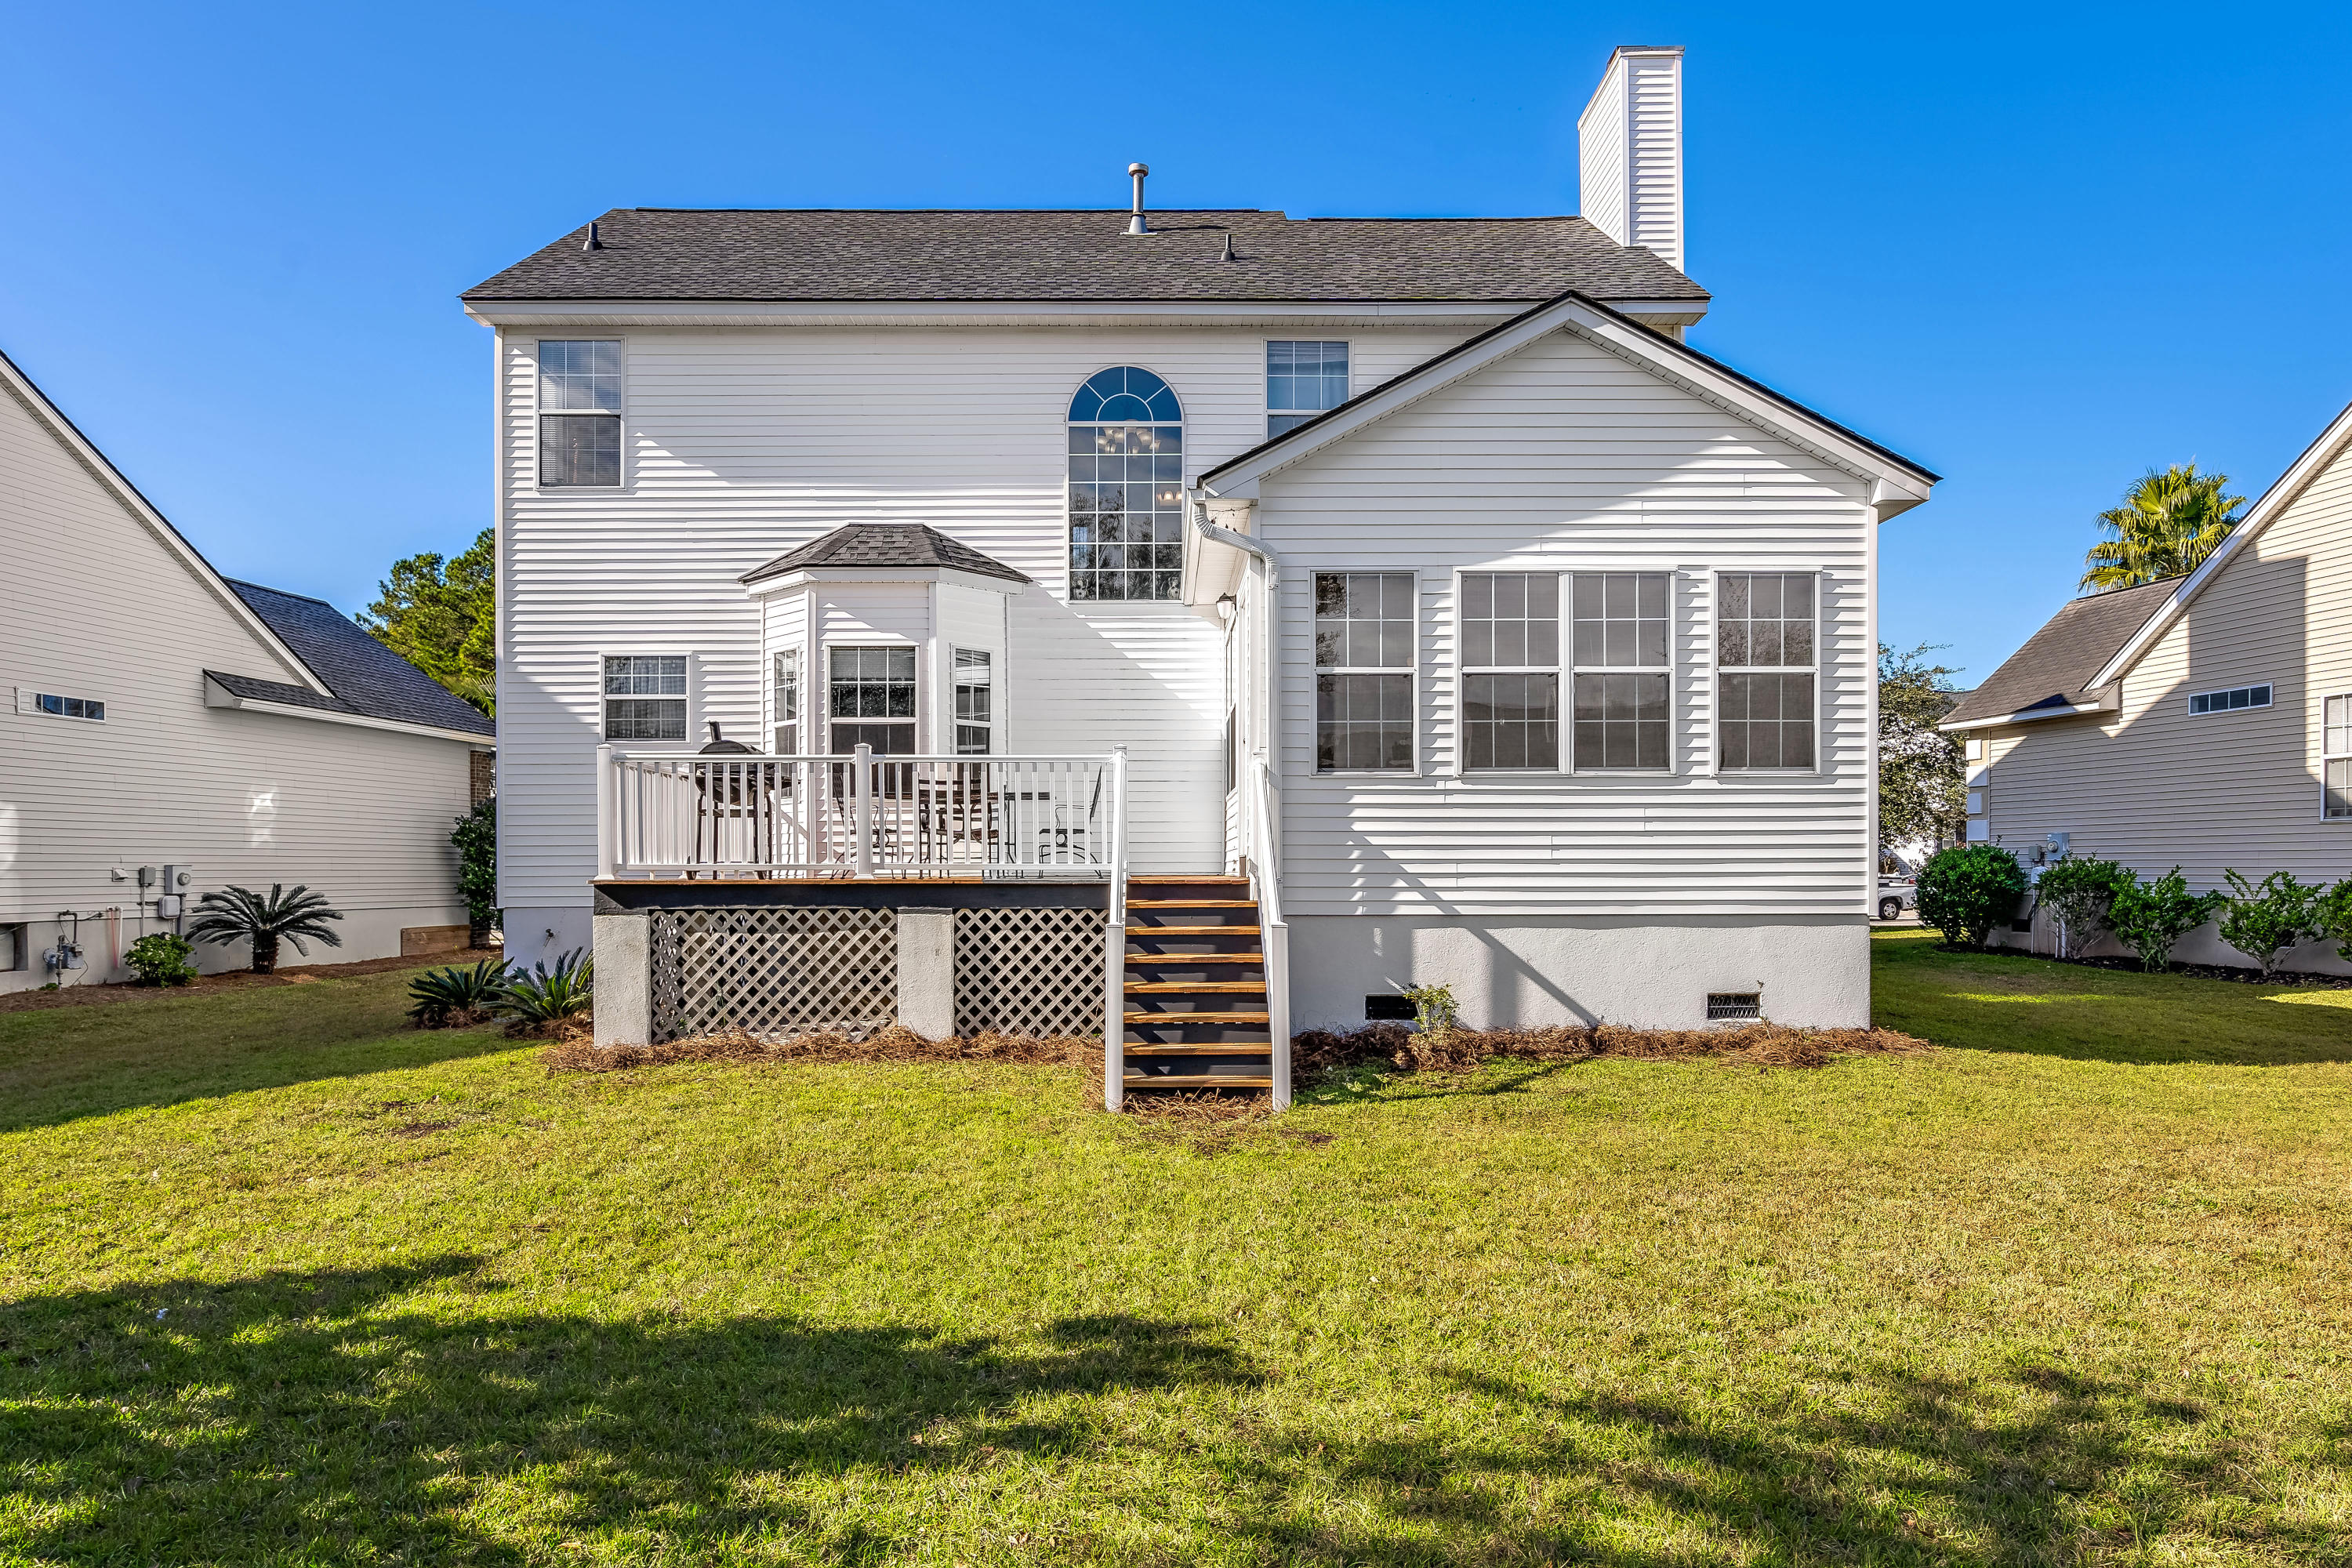 Rivertowne Country Club Homes For Sale - 1821 Great Hope, Mount Pleasant, SC - 2